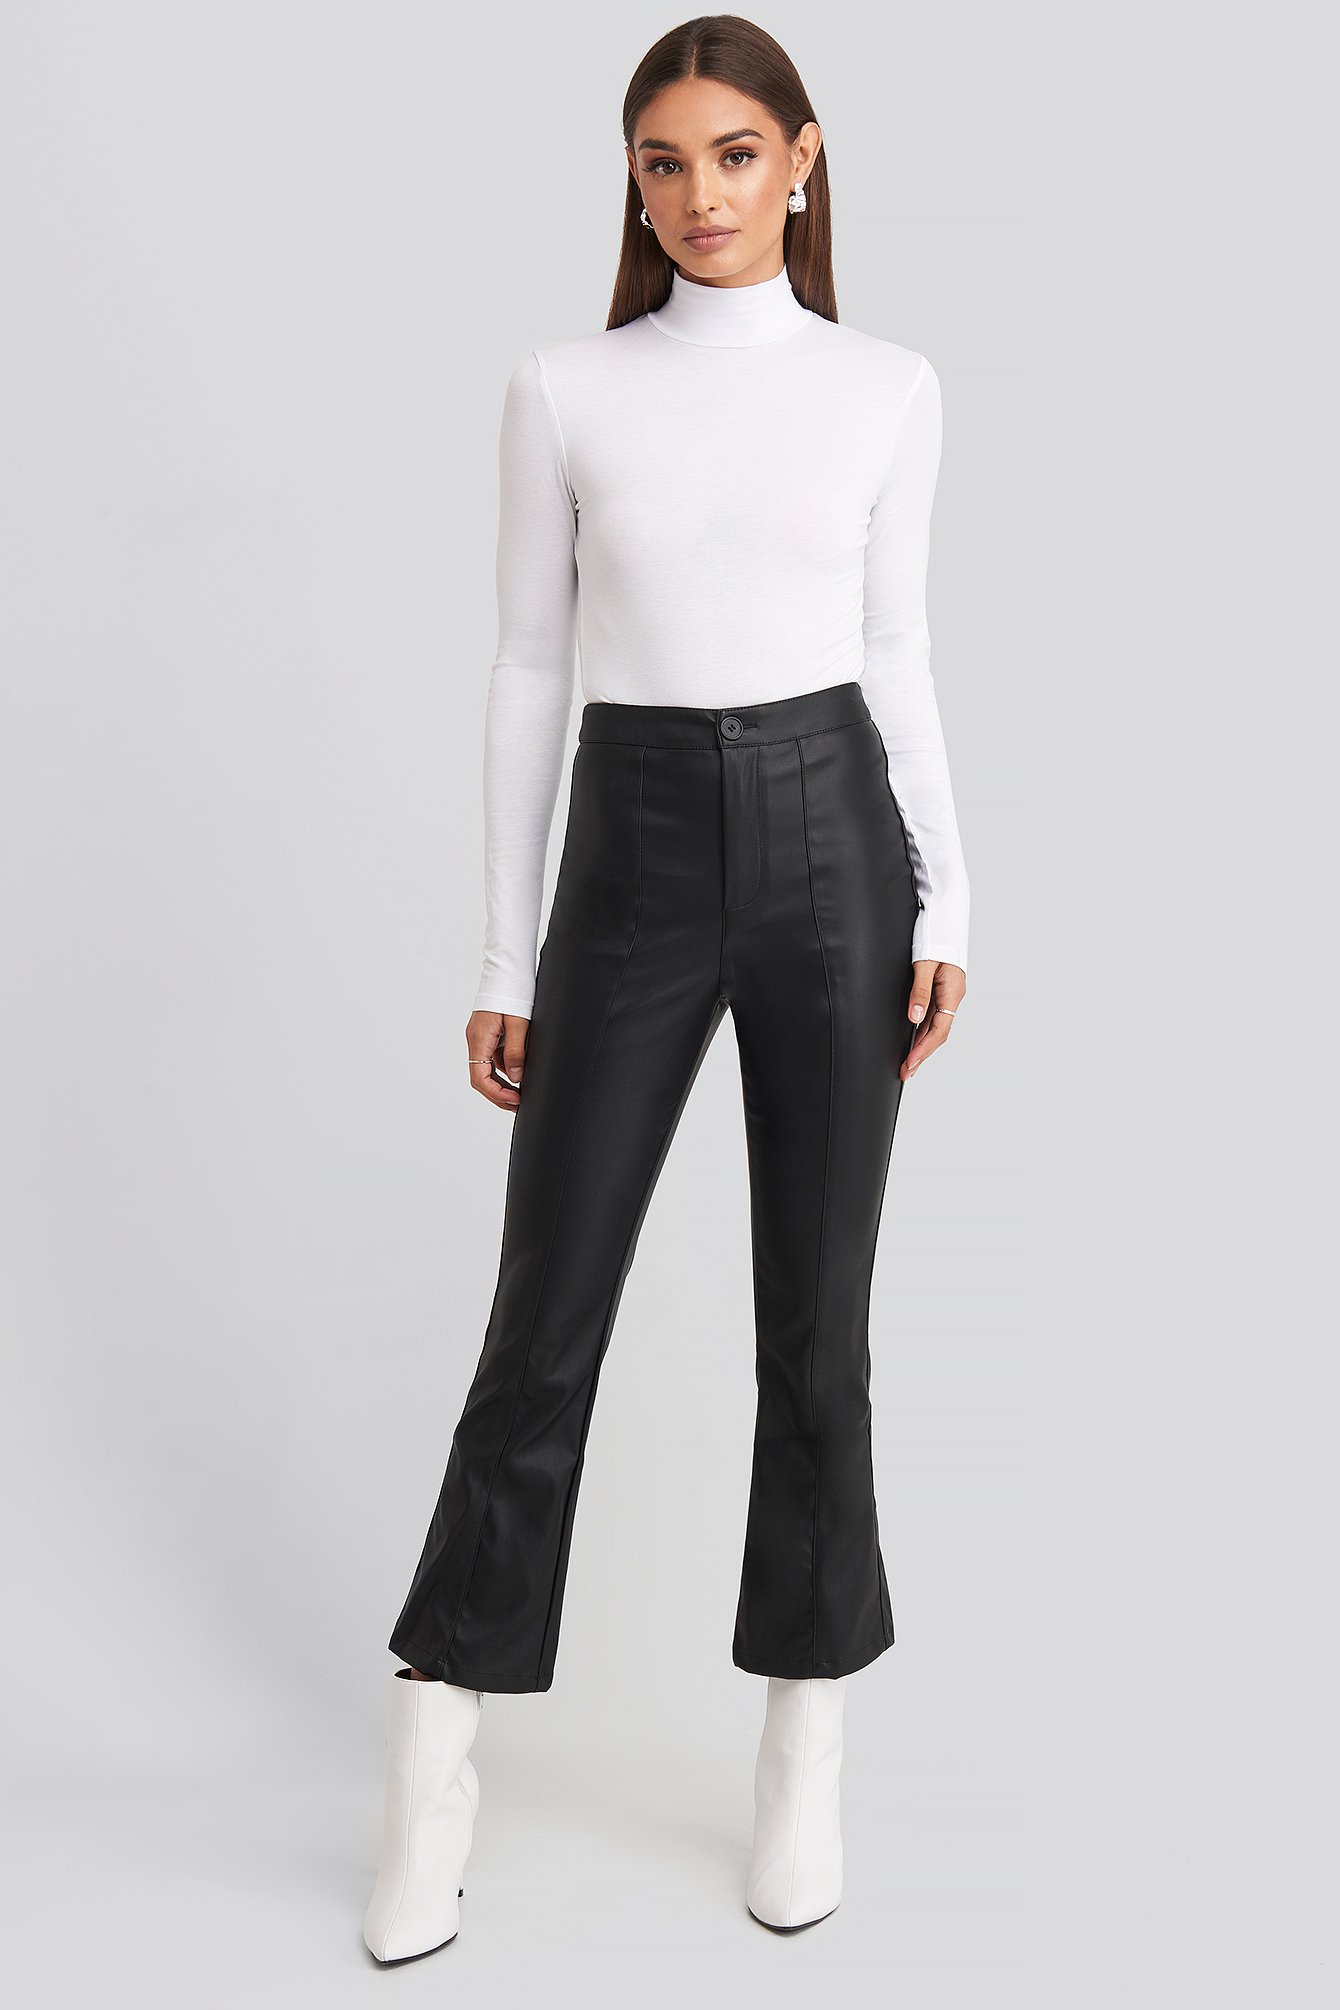 Flared Pu Pants Sort by Hossxnakd